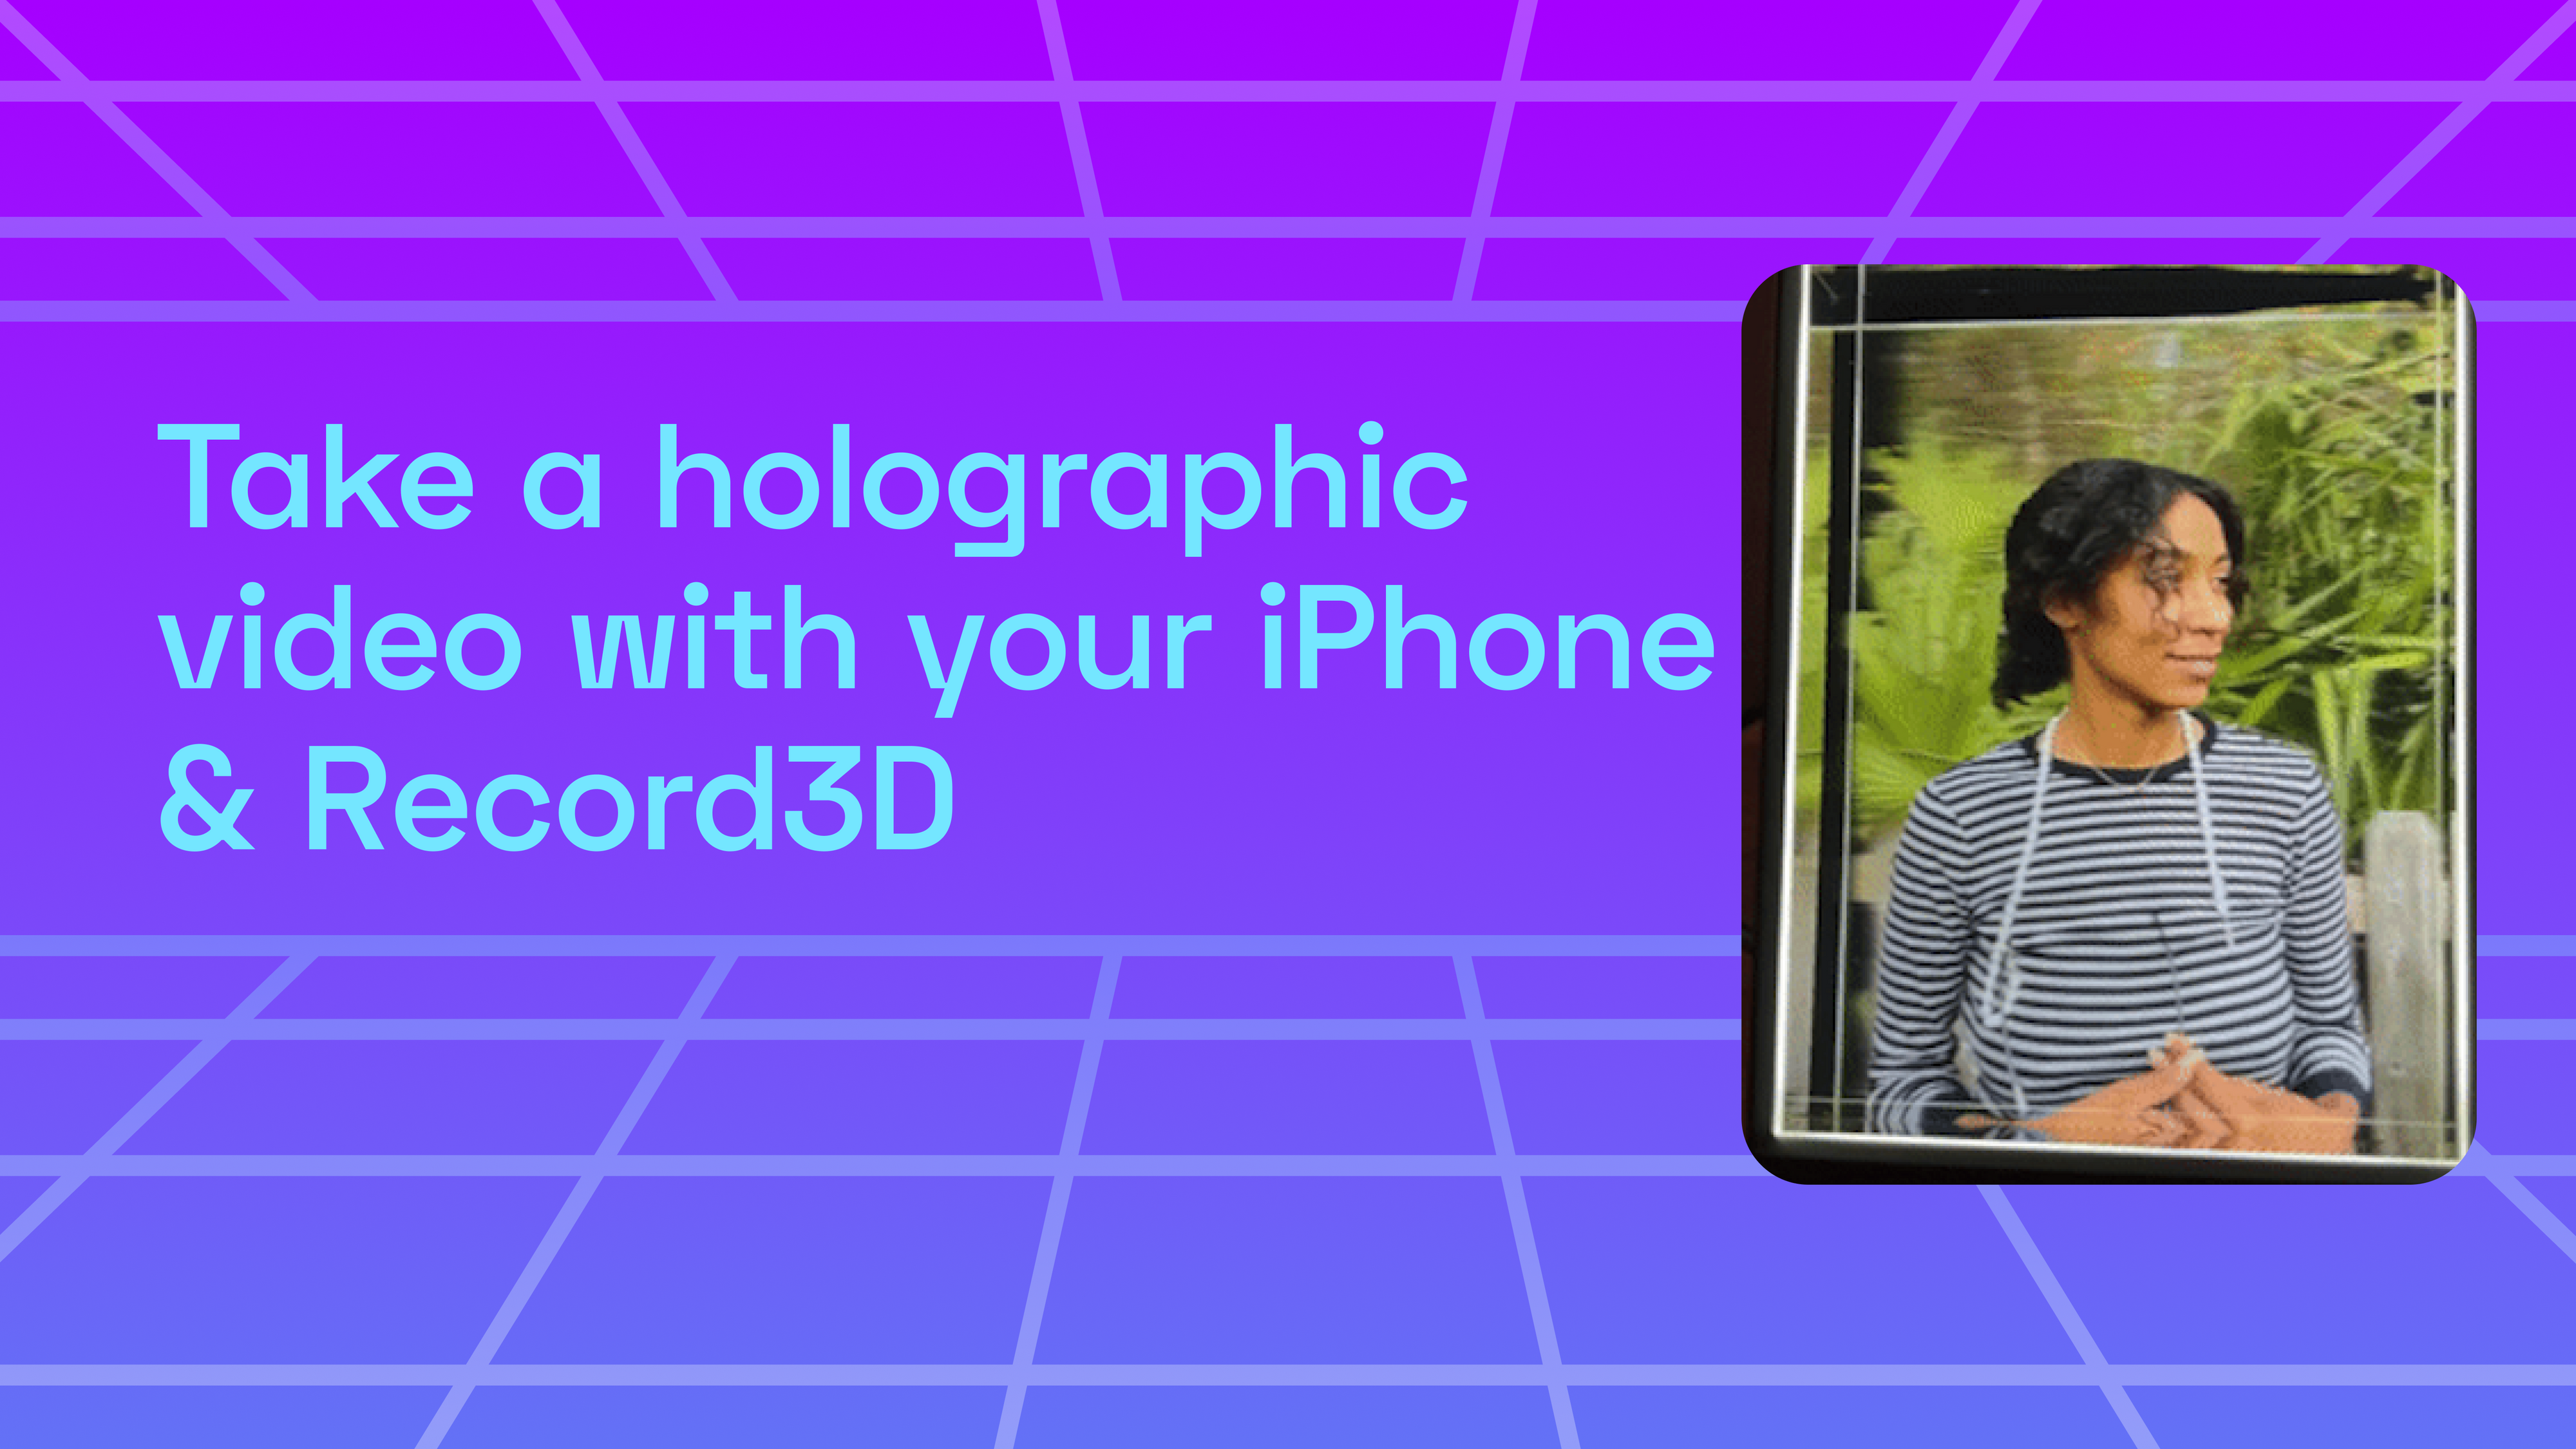 Take a holographic video using your iPhone with Record3D